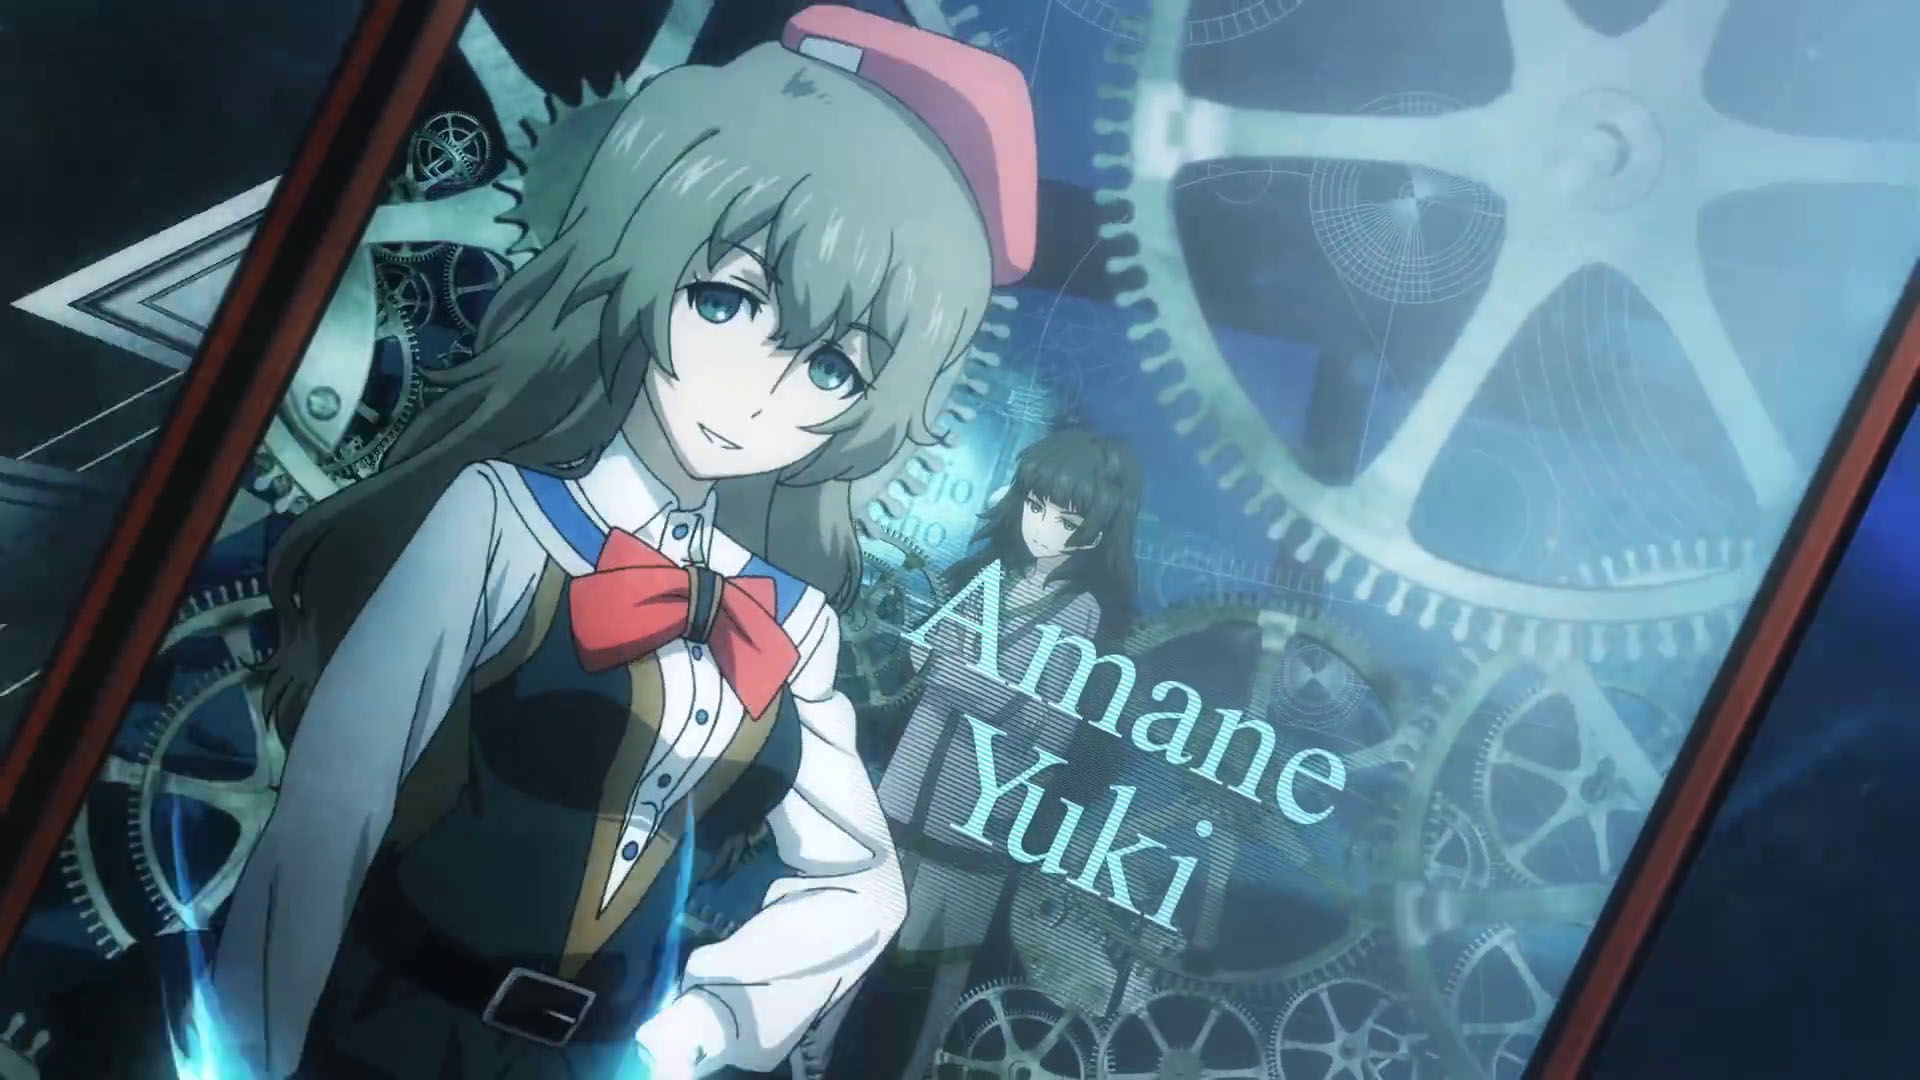 Mages Release Steins Gate 0 Character Trailer Update